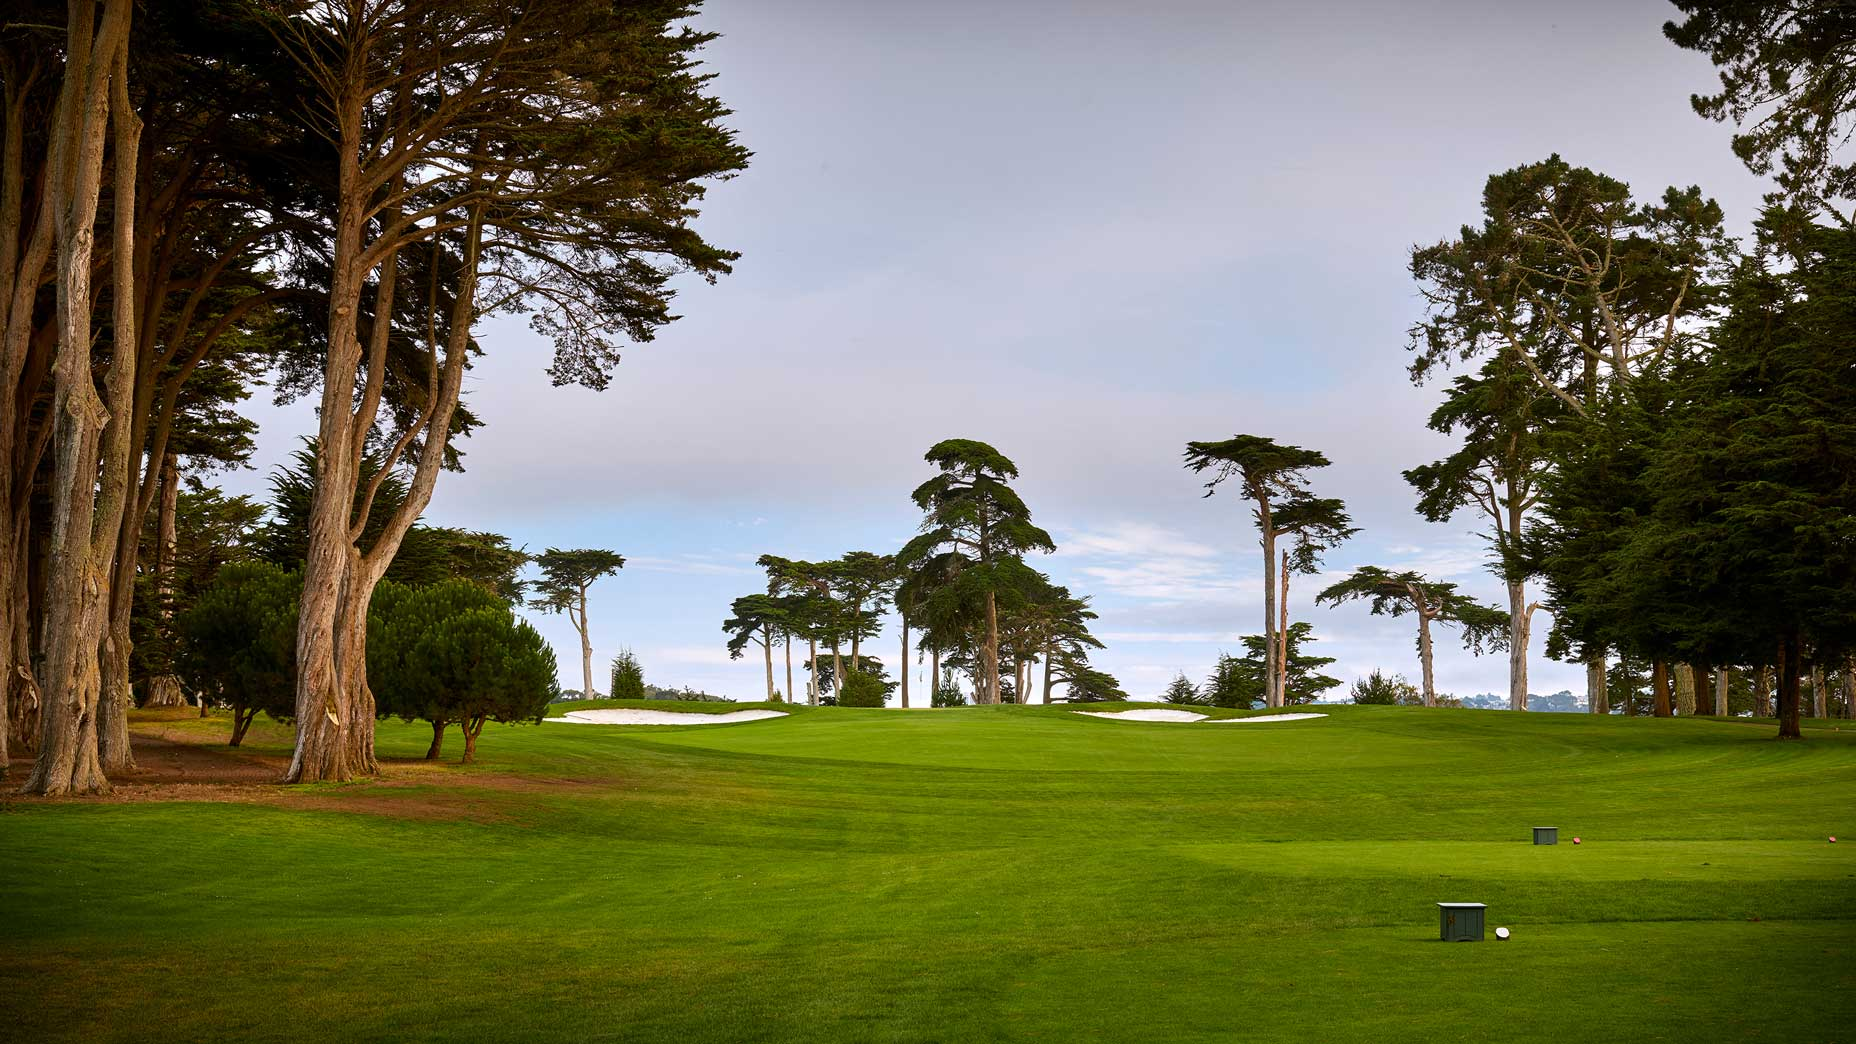 The 185-yard, par-3 3rd hole at TPC Harding Park in 2018.